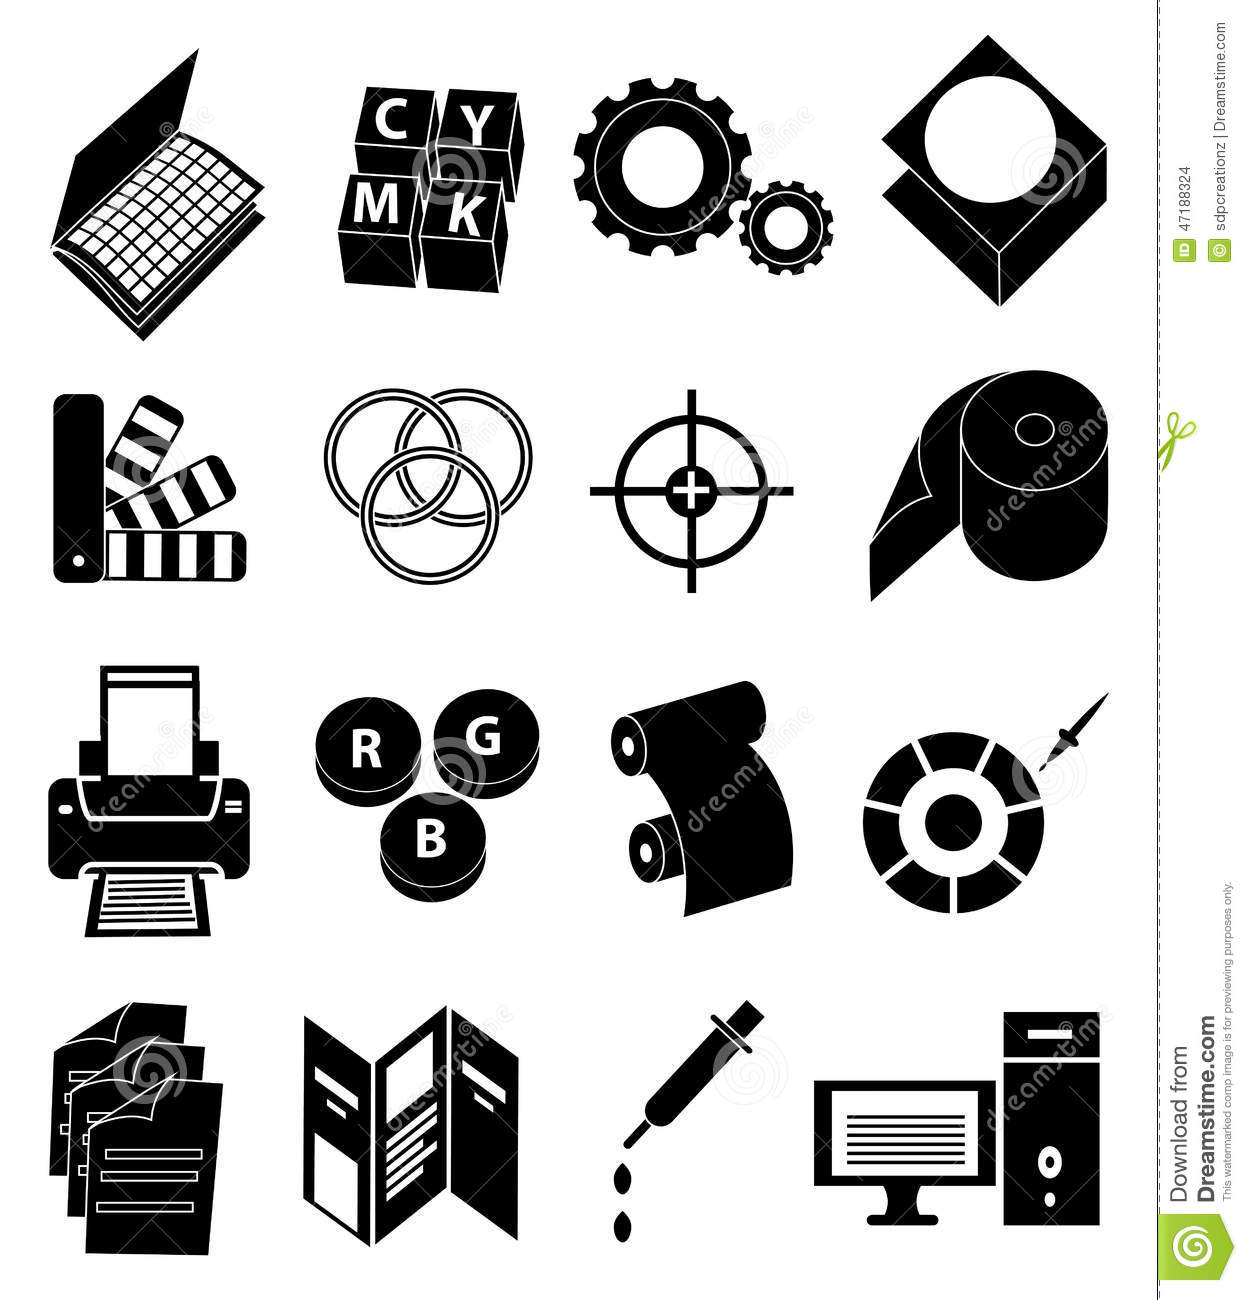 The Gutenberg Press 1440 furthermore US20130017296 as well Stock Illustration Printing Press Icons Set Black Image47188324 likewise US20050109448 moreover Offset Lithography. on offset printing process